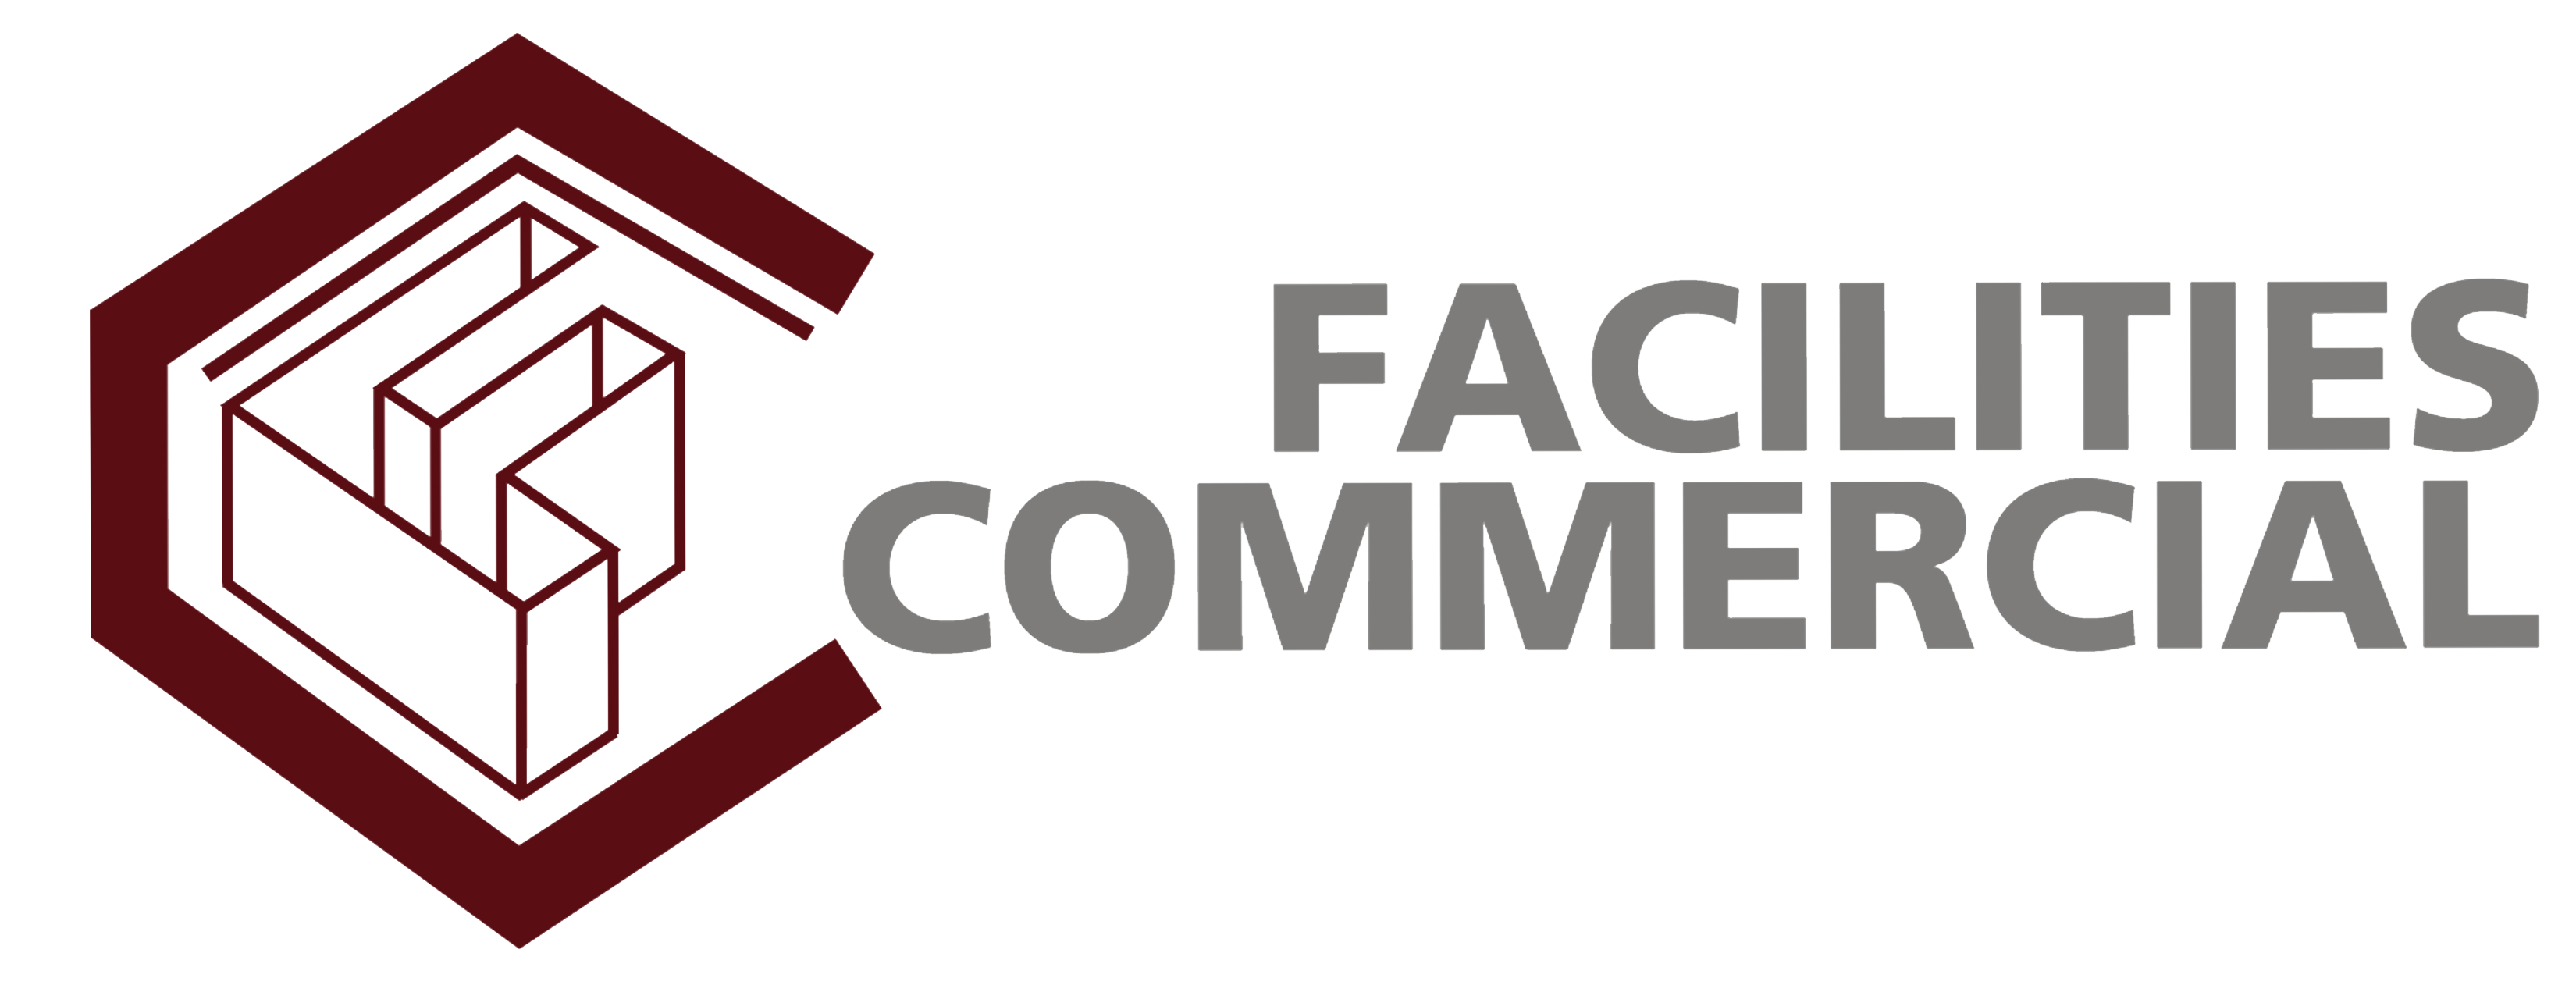 Facilities Commercial